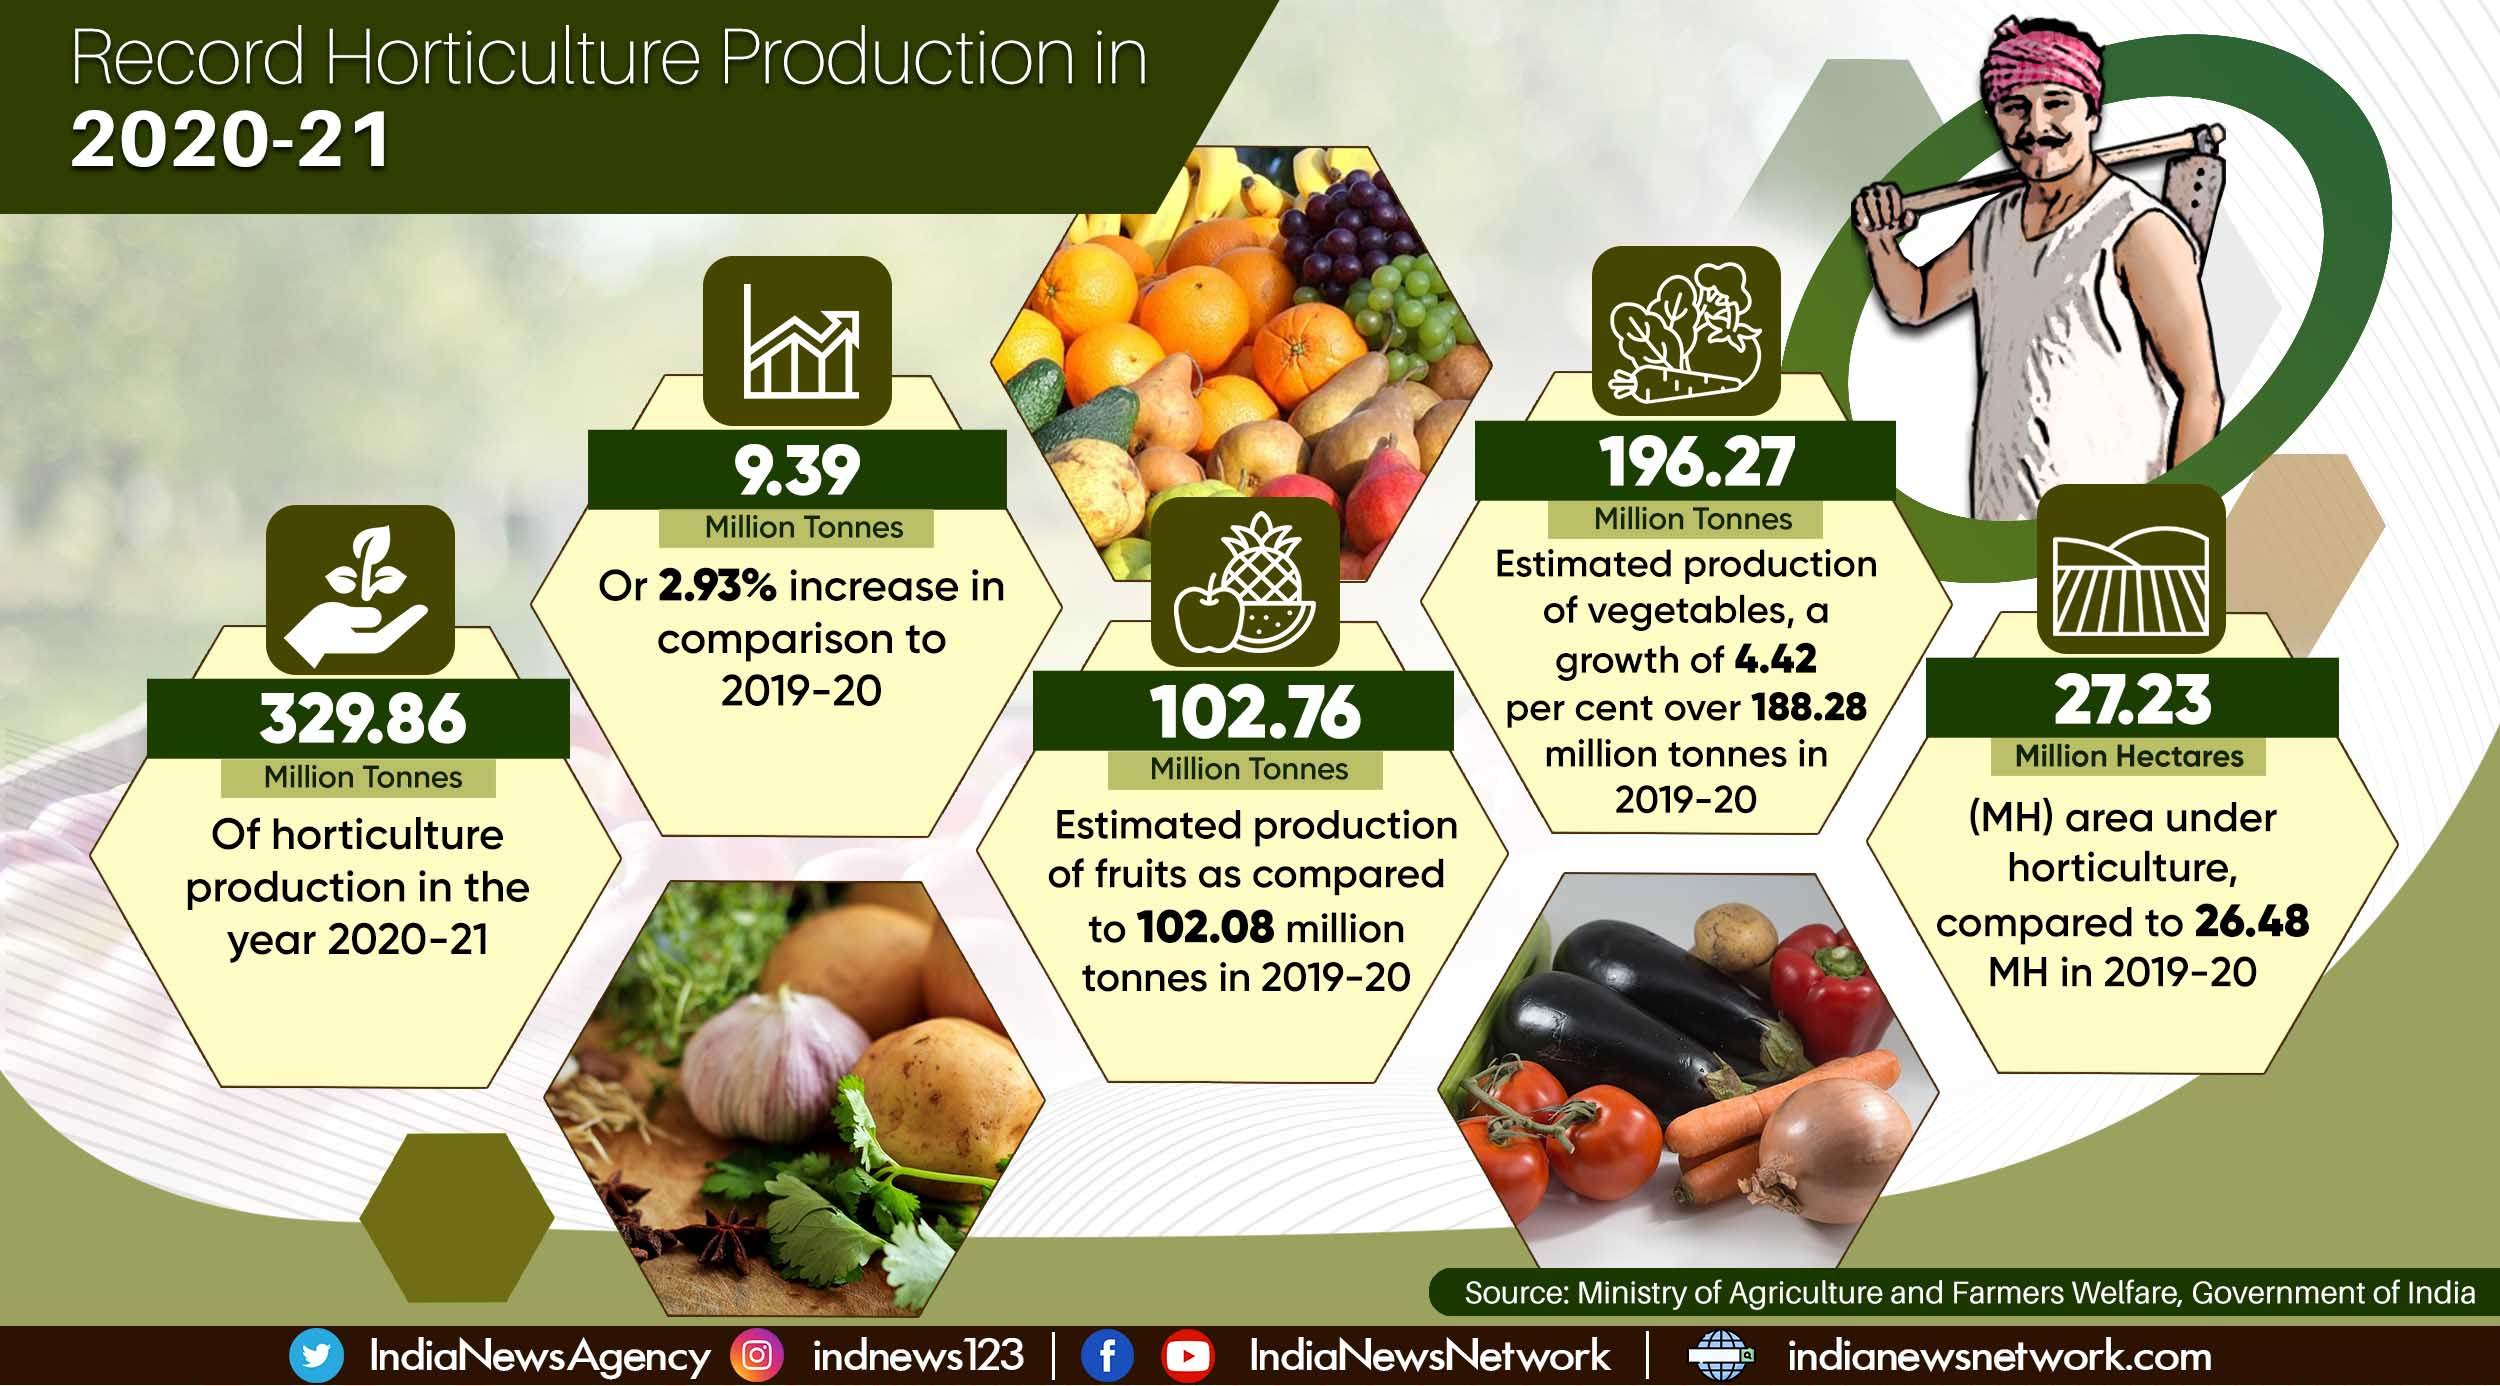 India looks at highest-ever horticulture production at 329.86 million tonnes